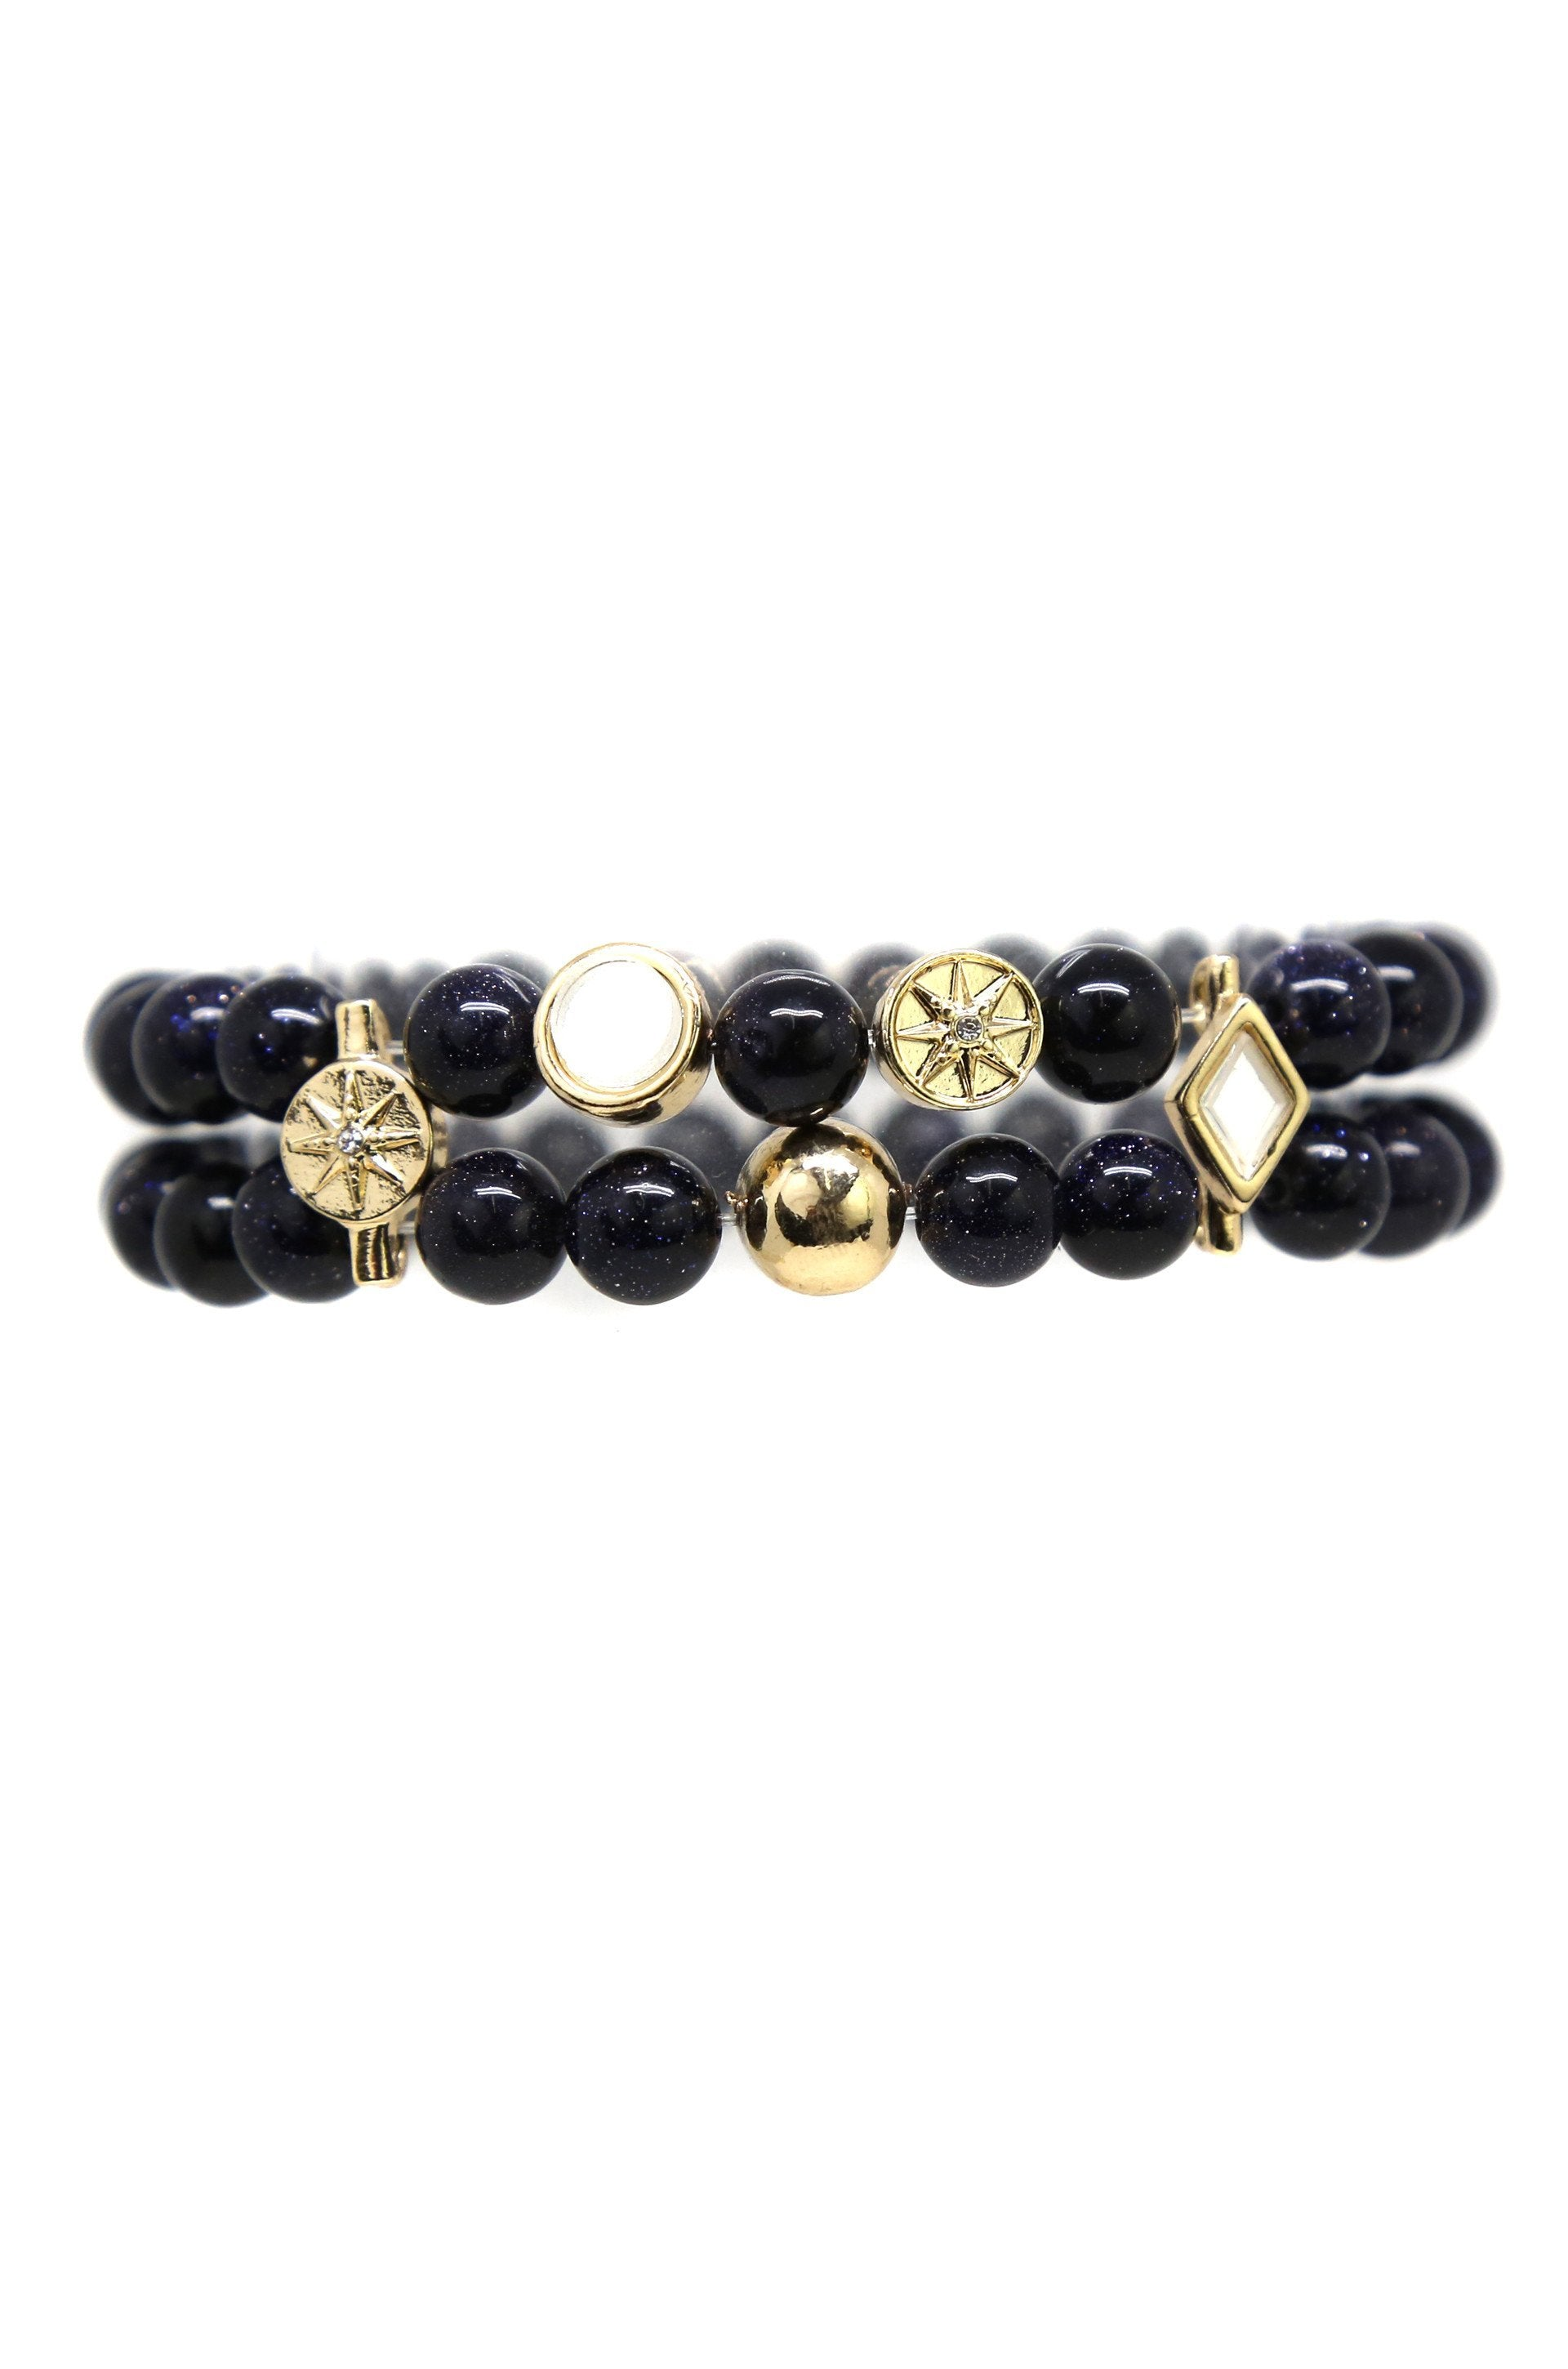 Better Together 18k Gold Plated Bracelet in Blue Goldstone